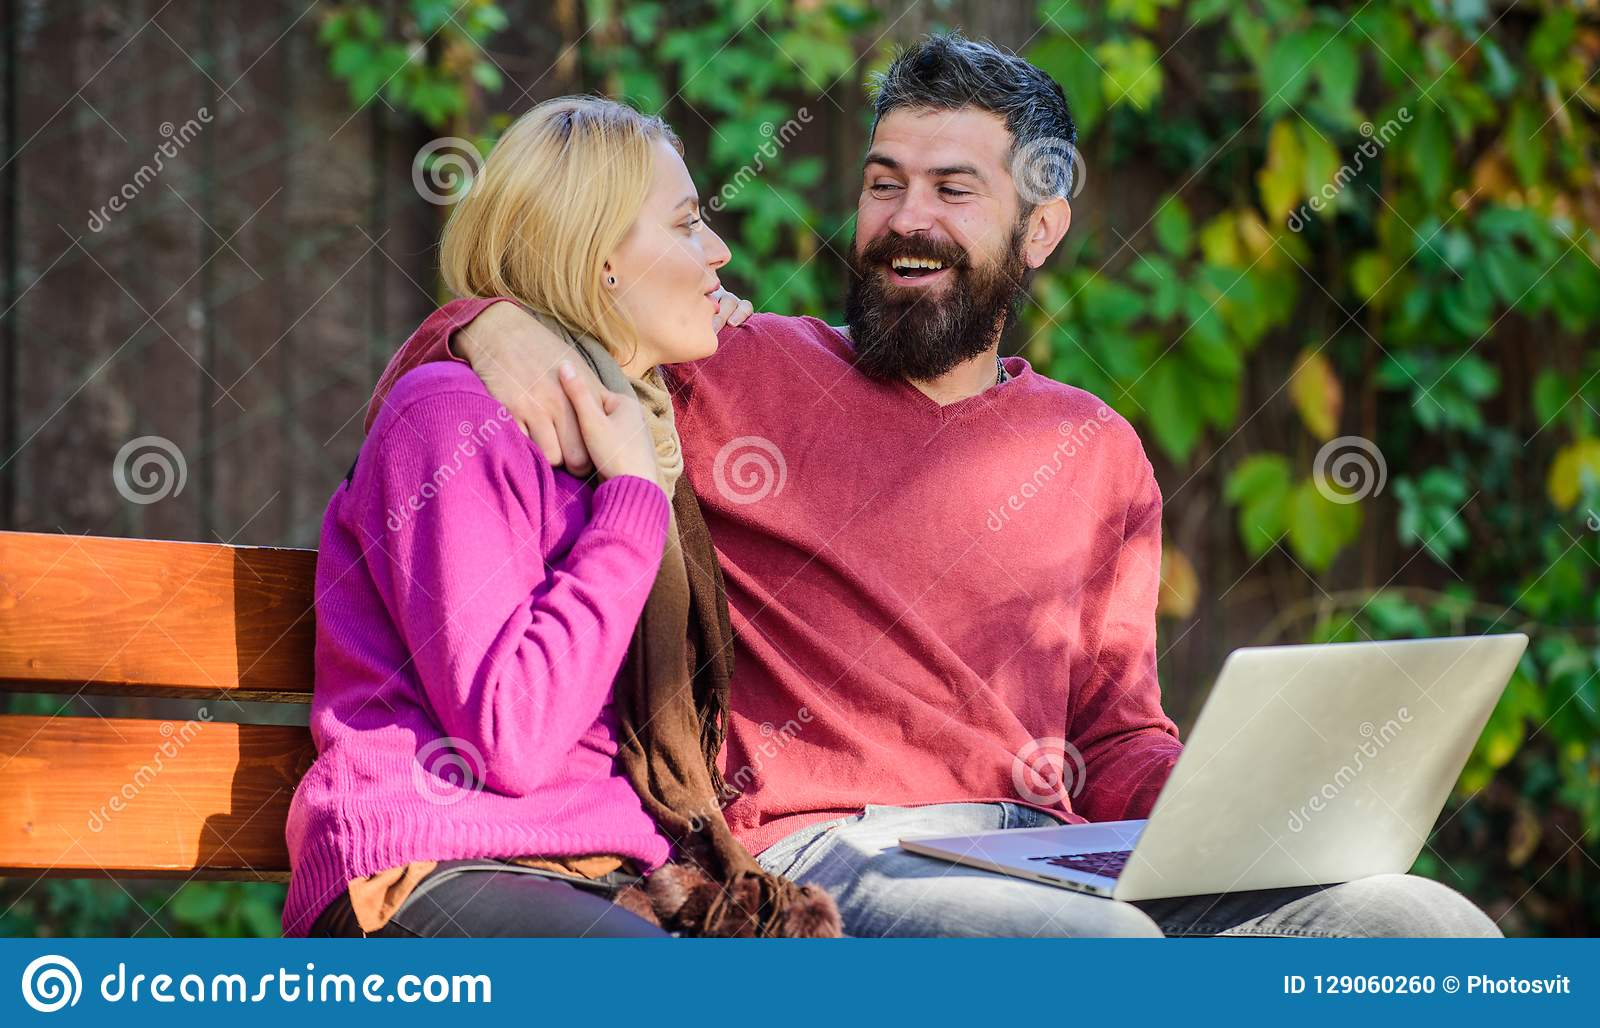 Couple in love notebook consume content. Surfing internet together. Couple with laptop sit bench in park nature